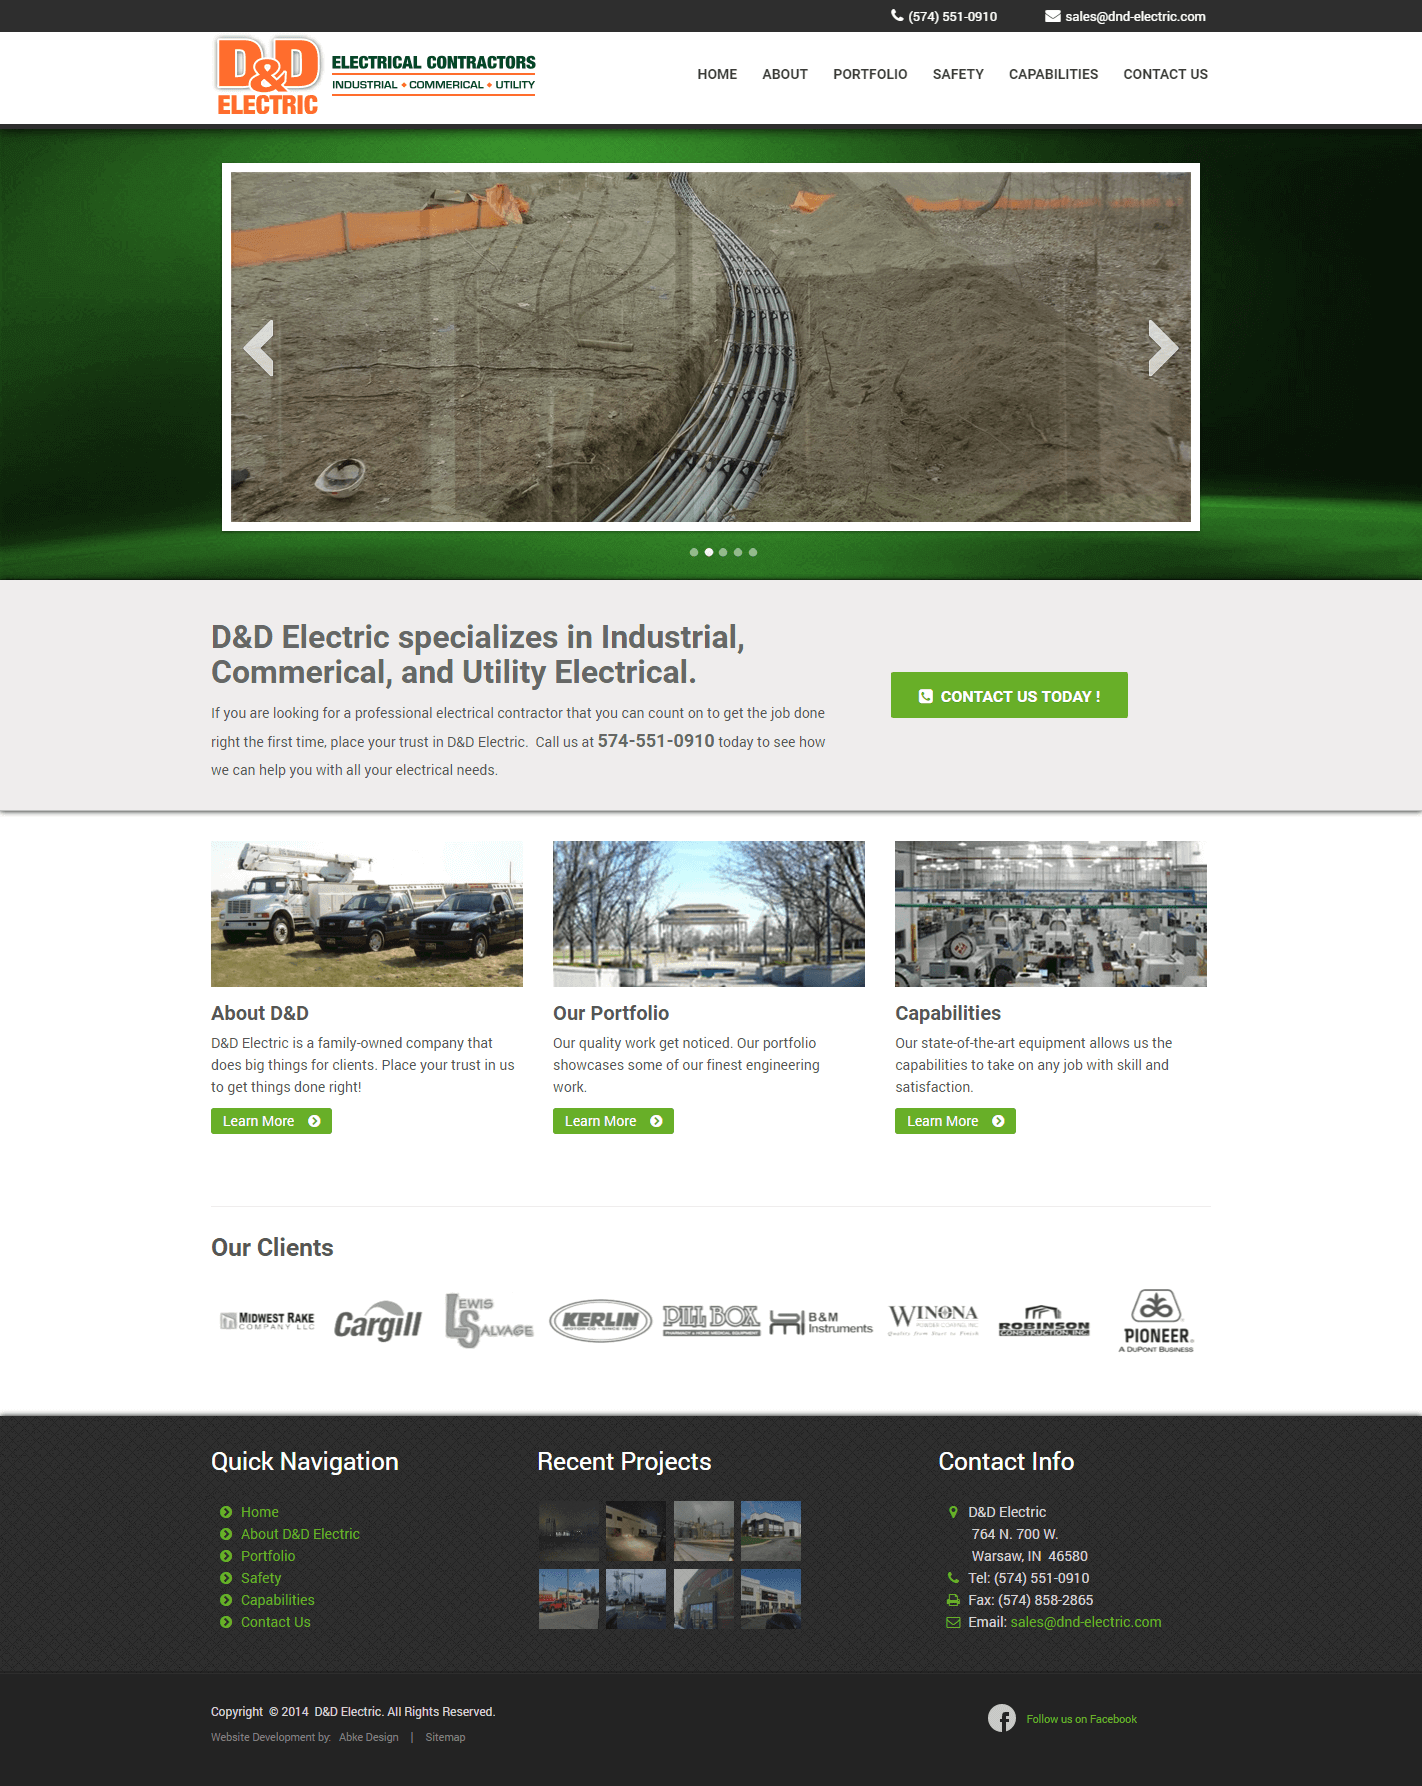 DND Electric - Website Design & Development by Abke Design